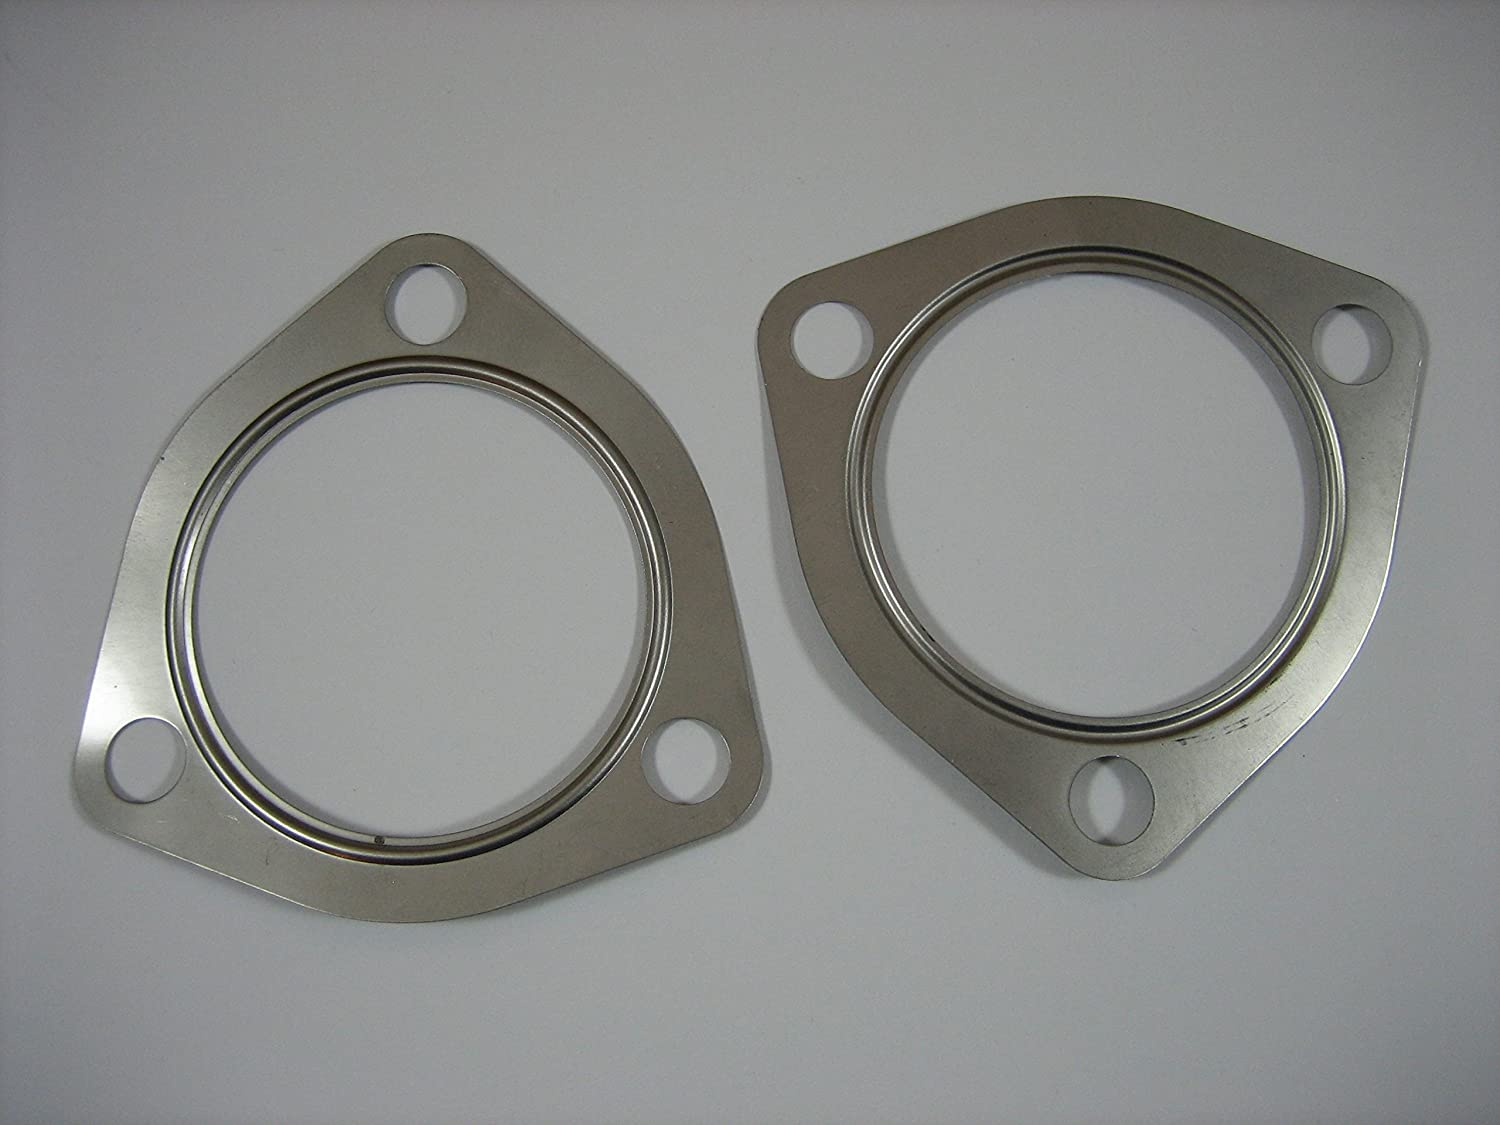 Exhaust Manifold Gasket Set P38 Range Rover by Allmakes 4x4